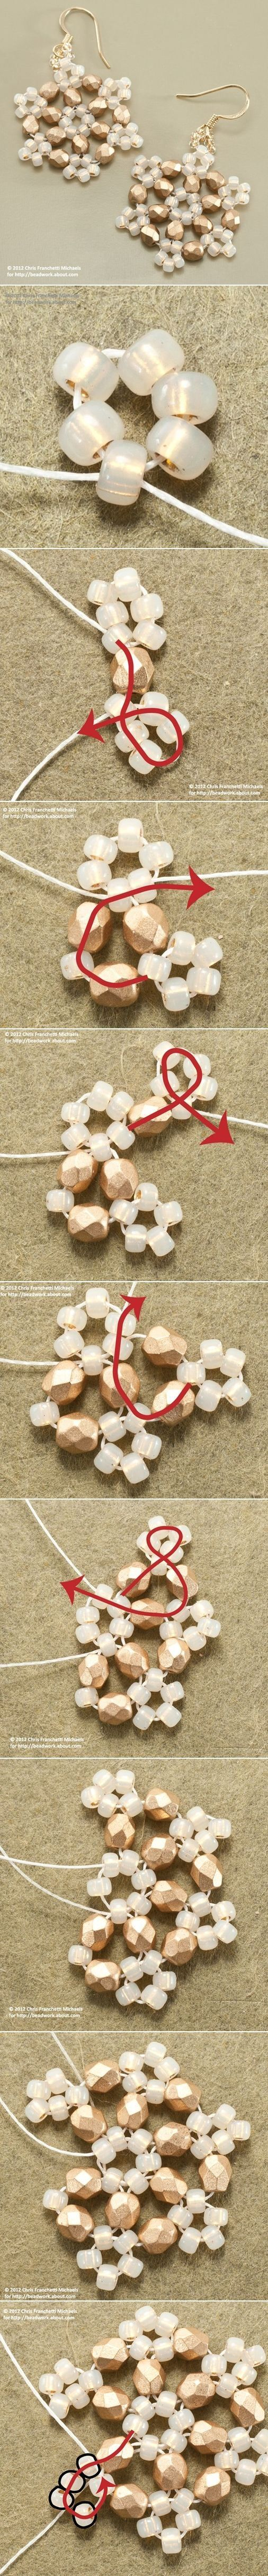 Snowflake Earrings DIY Jewelry Earrings.  Good picture diagram.